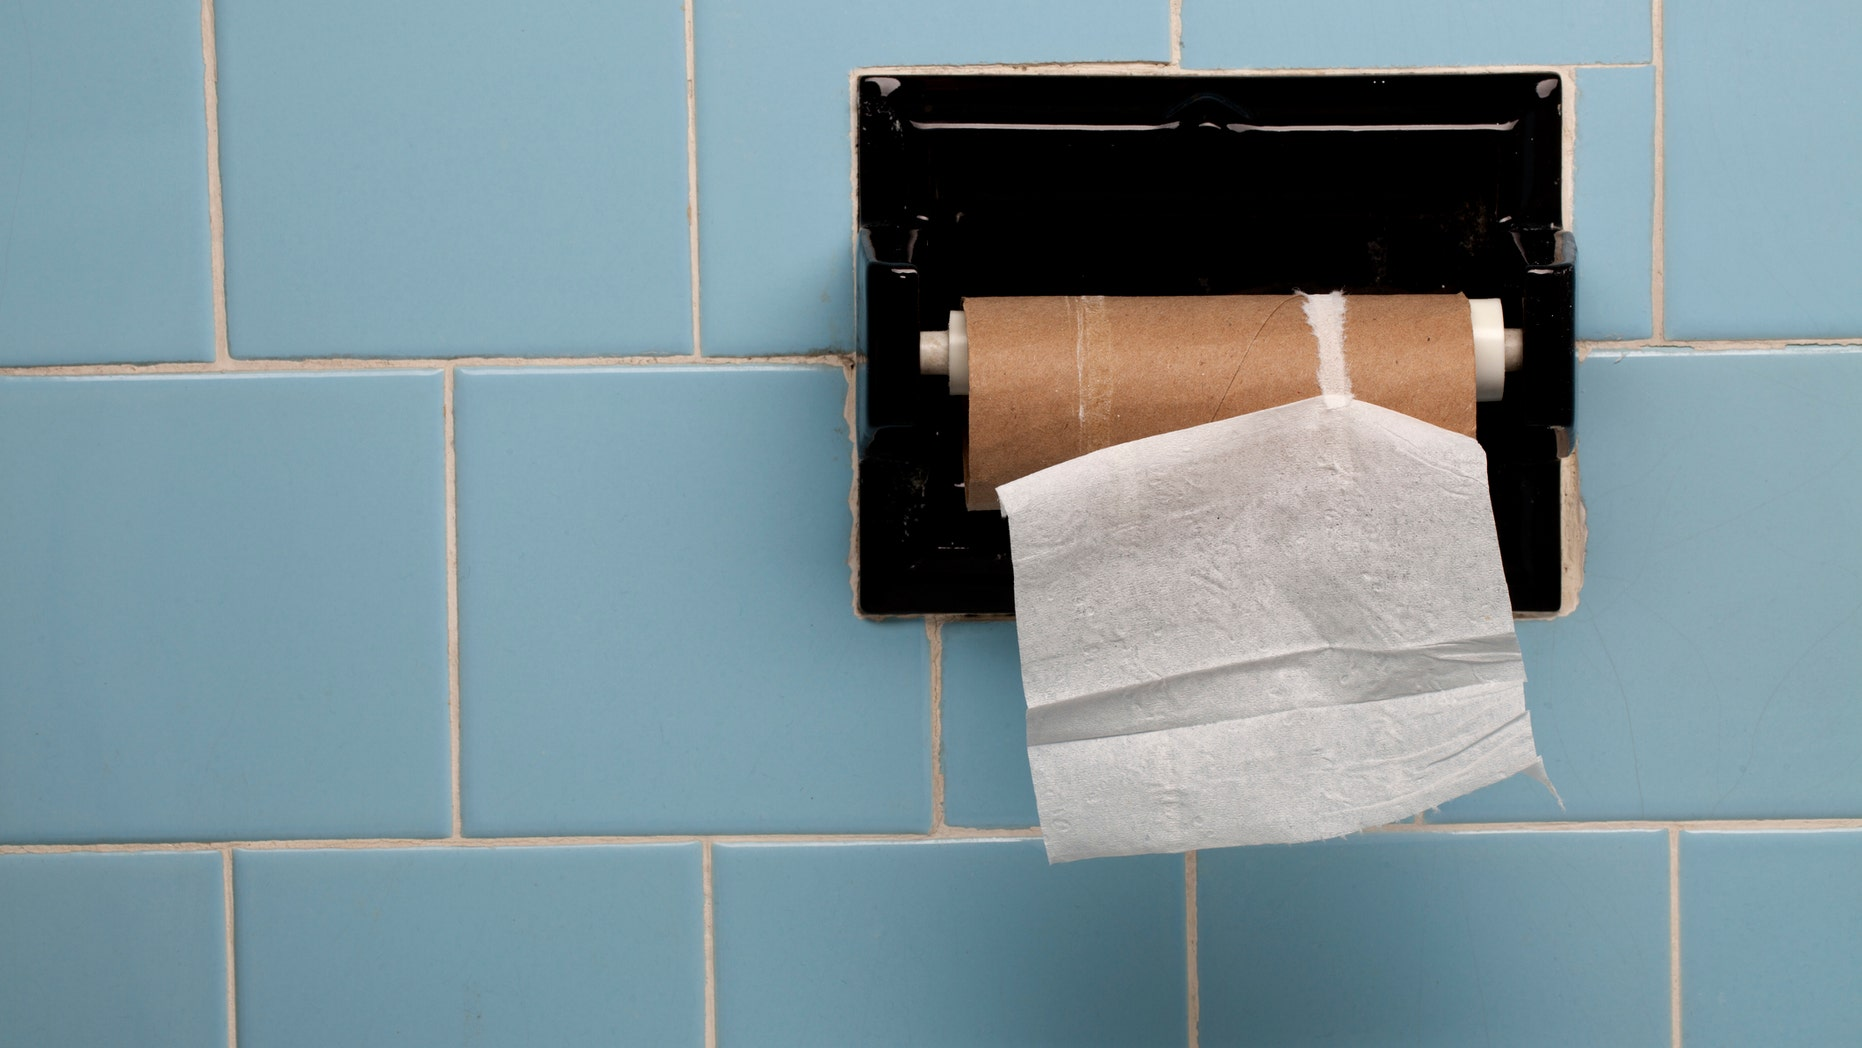 It can be good news for anyone who is afraid of running out of toilet paper.